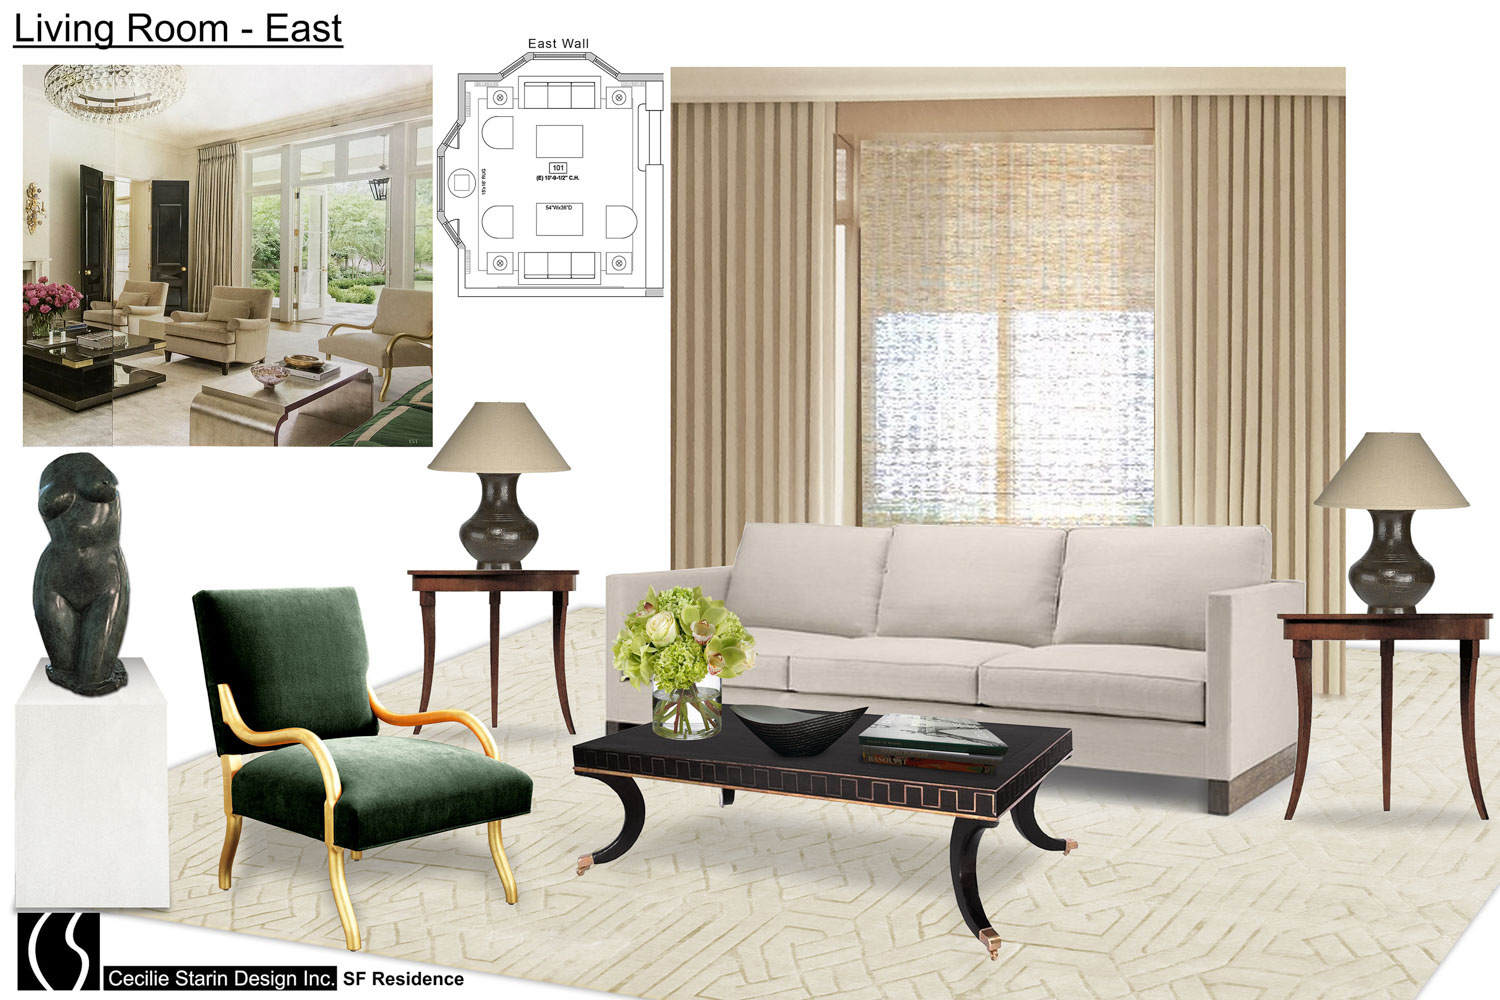 SF Residence Living Room East 18x12.jpg